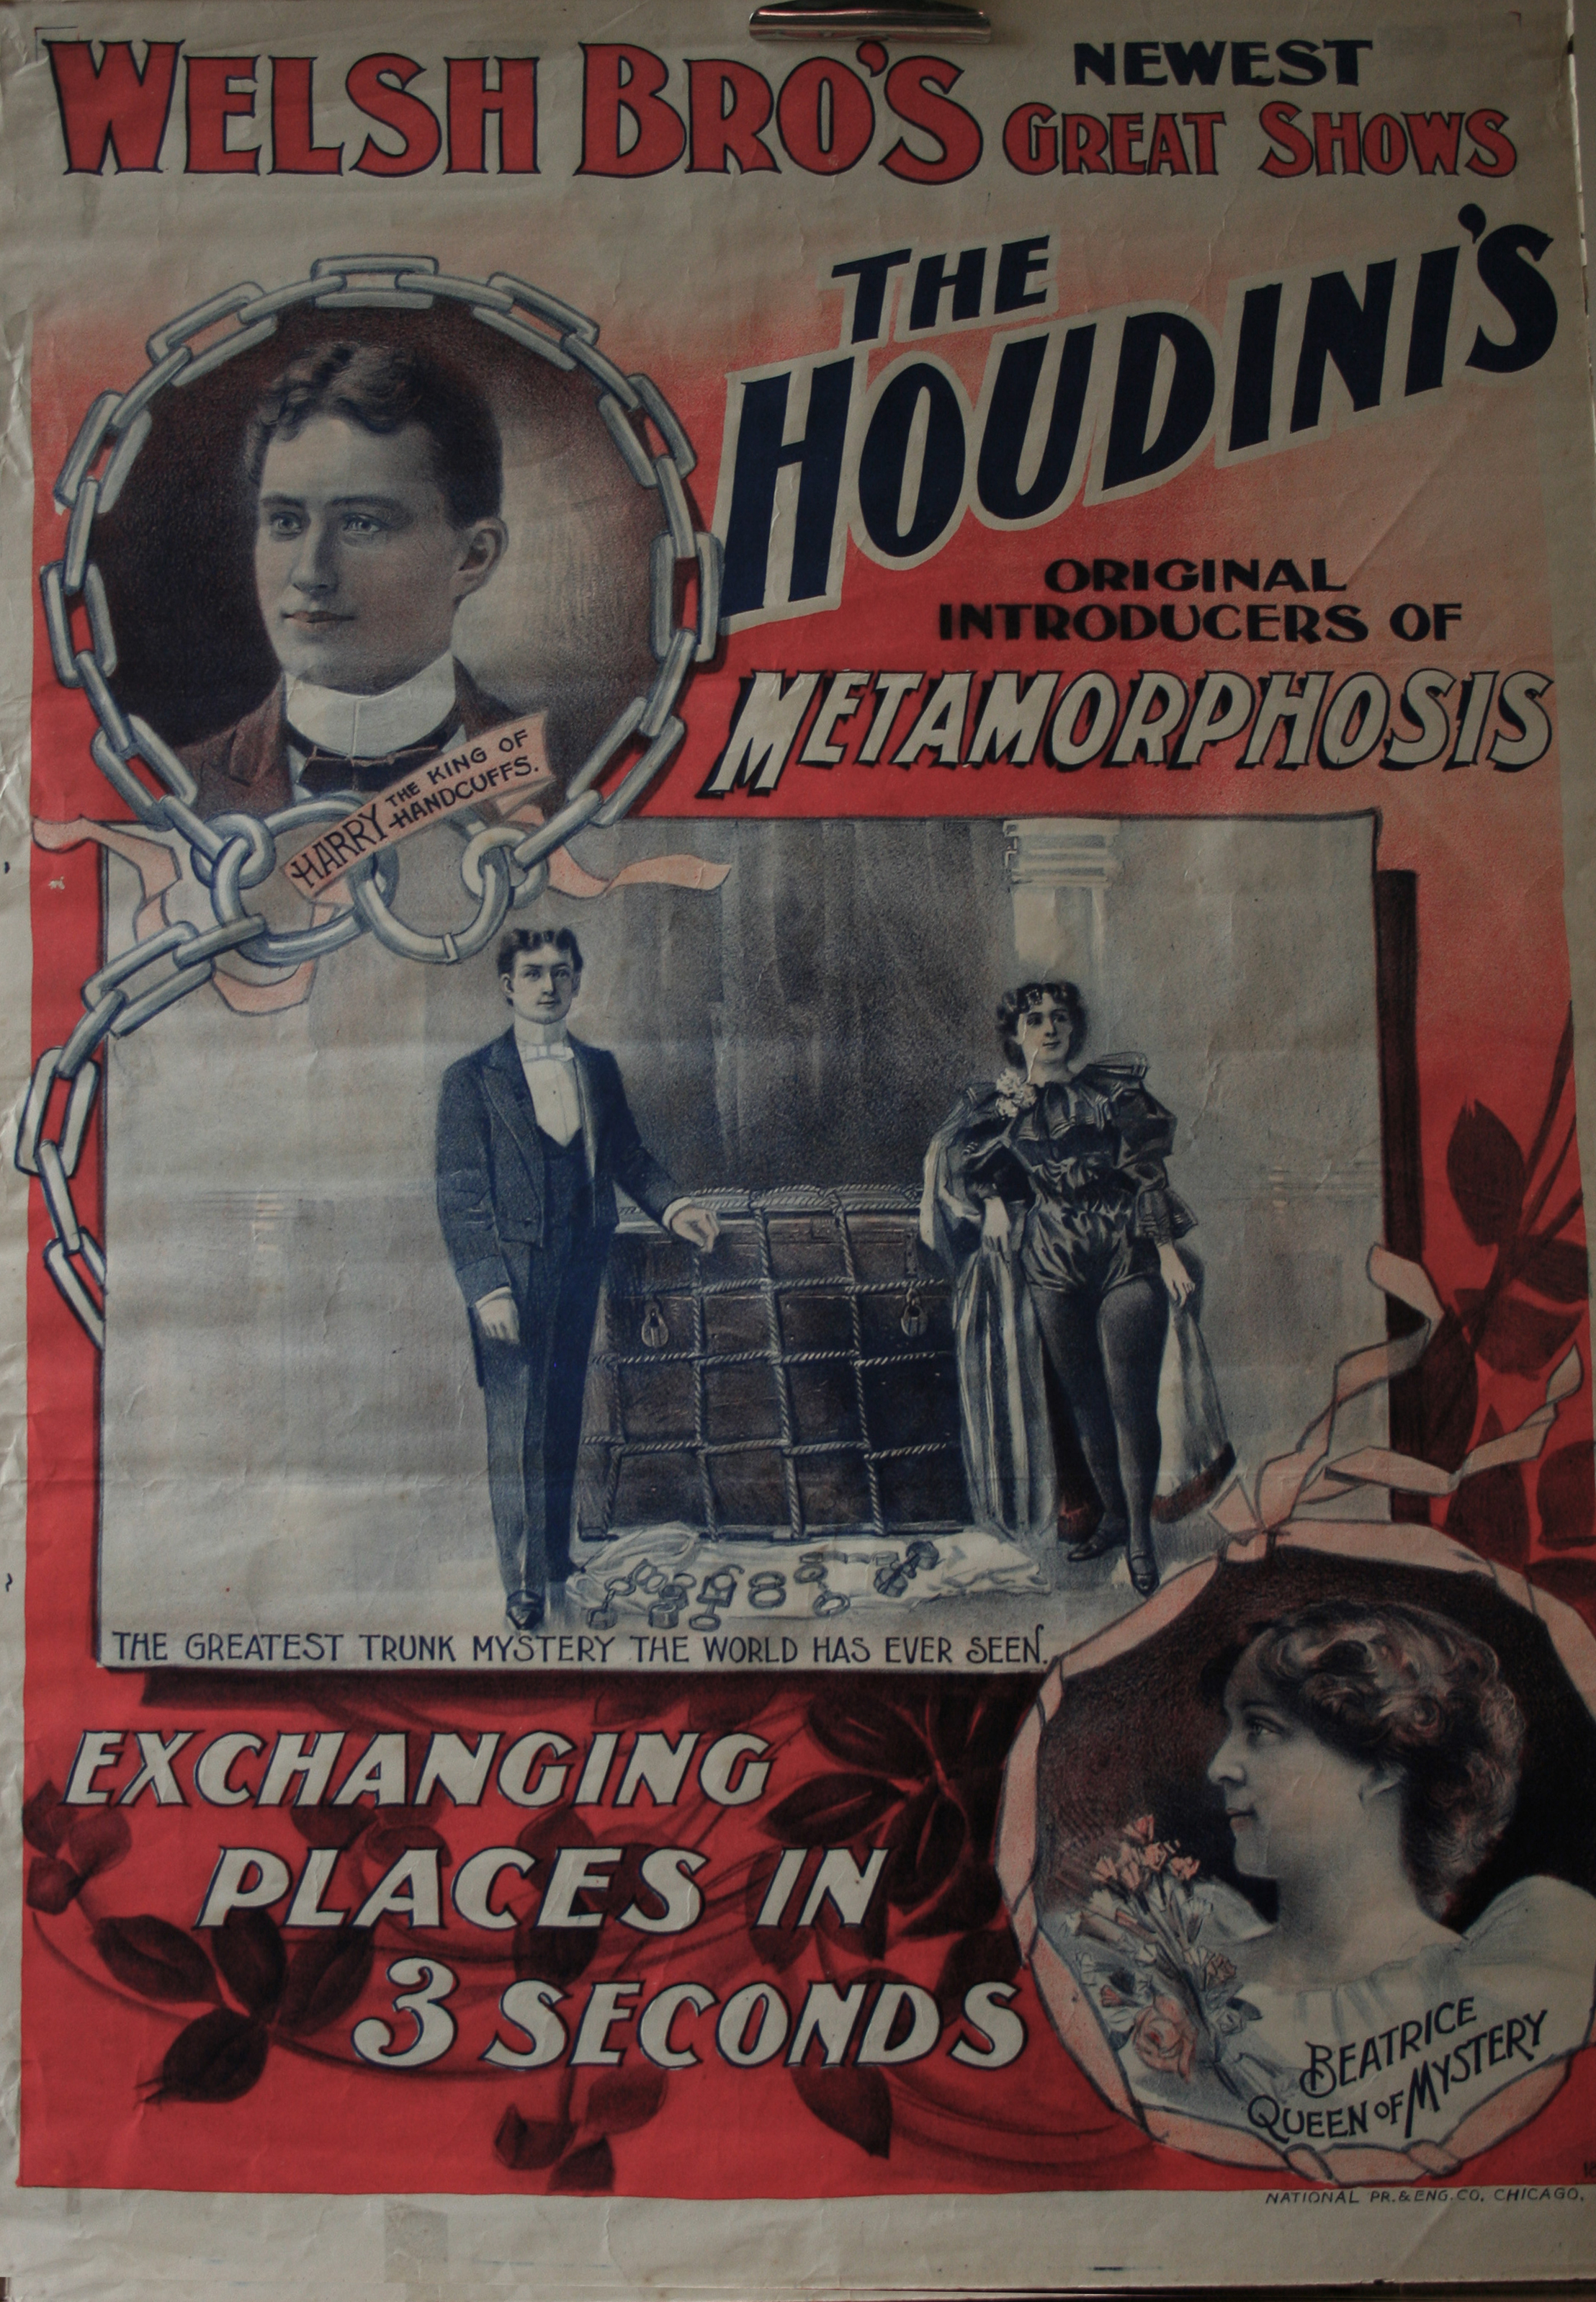 Poster for Houdini's